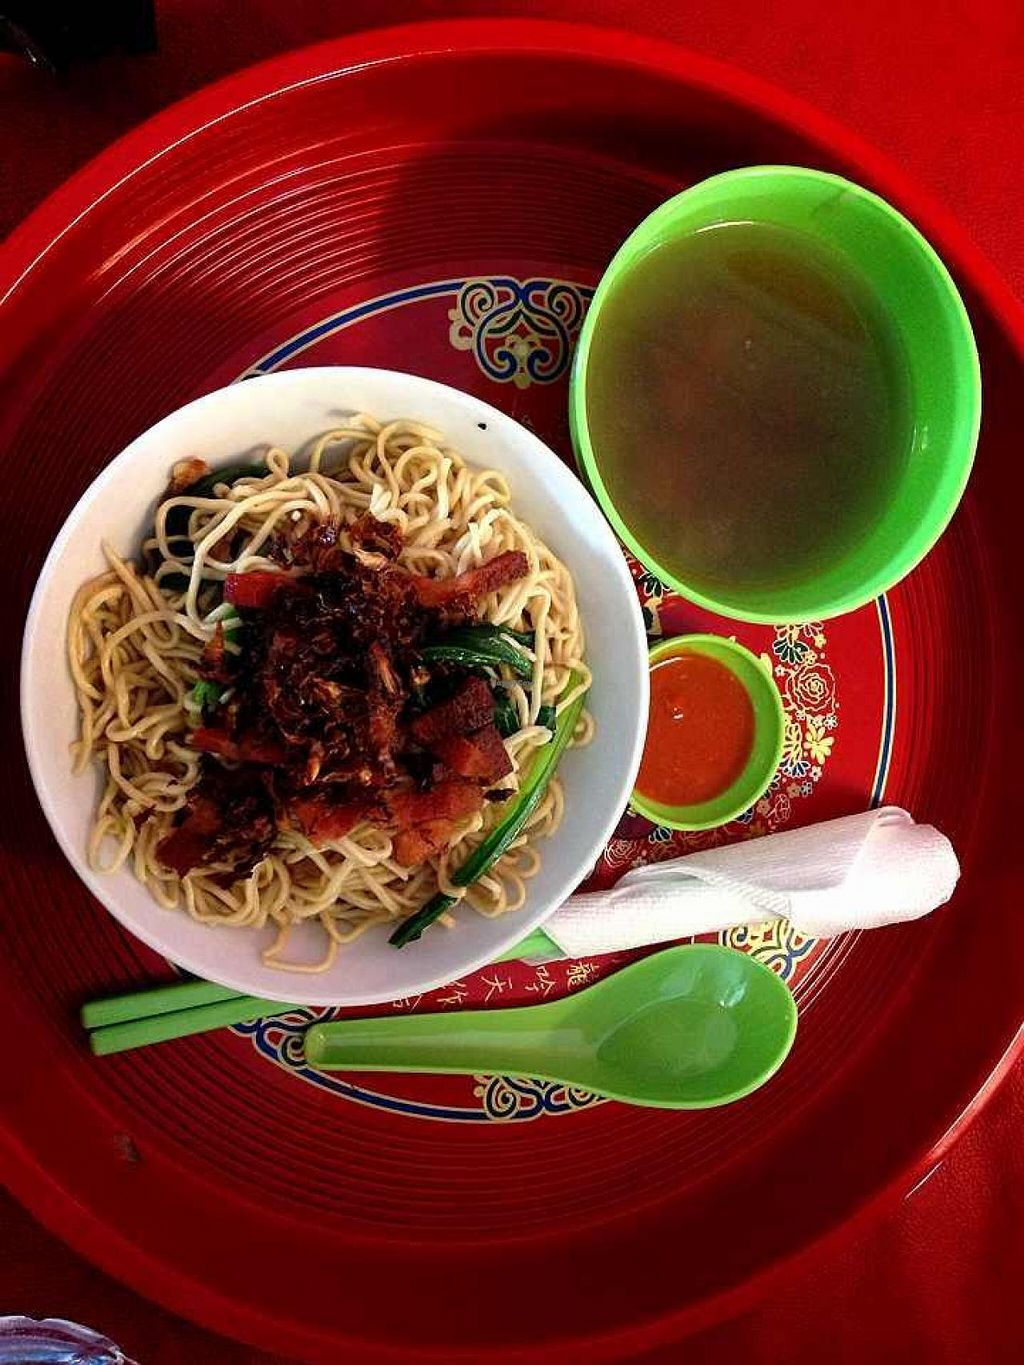 """Photo of CLOSED: Indo Vege  by <a href=""""/members/profile/tony%20surf"""">tony surf</a> <br/>Sarawak Home made tender noodles with mushroom sauce. Local with choose this as their breakfast.  <br/> April 21, 2014  - <a href='/contact/abuse/image/46666/68228'>Report</a>"""